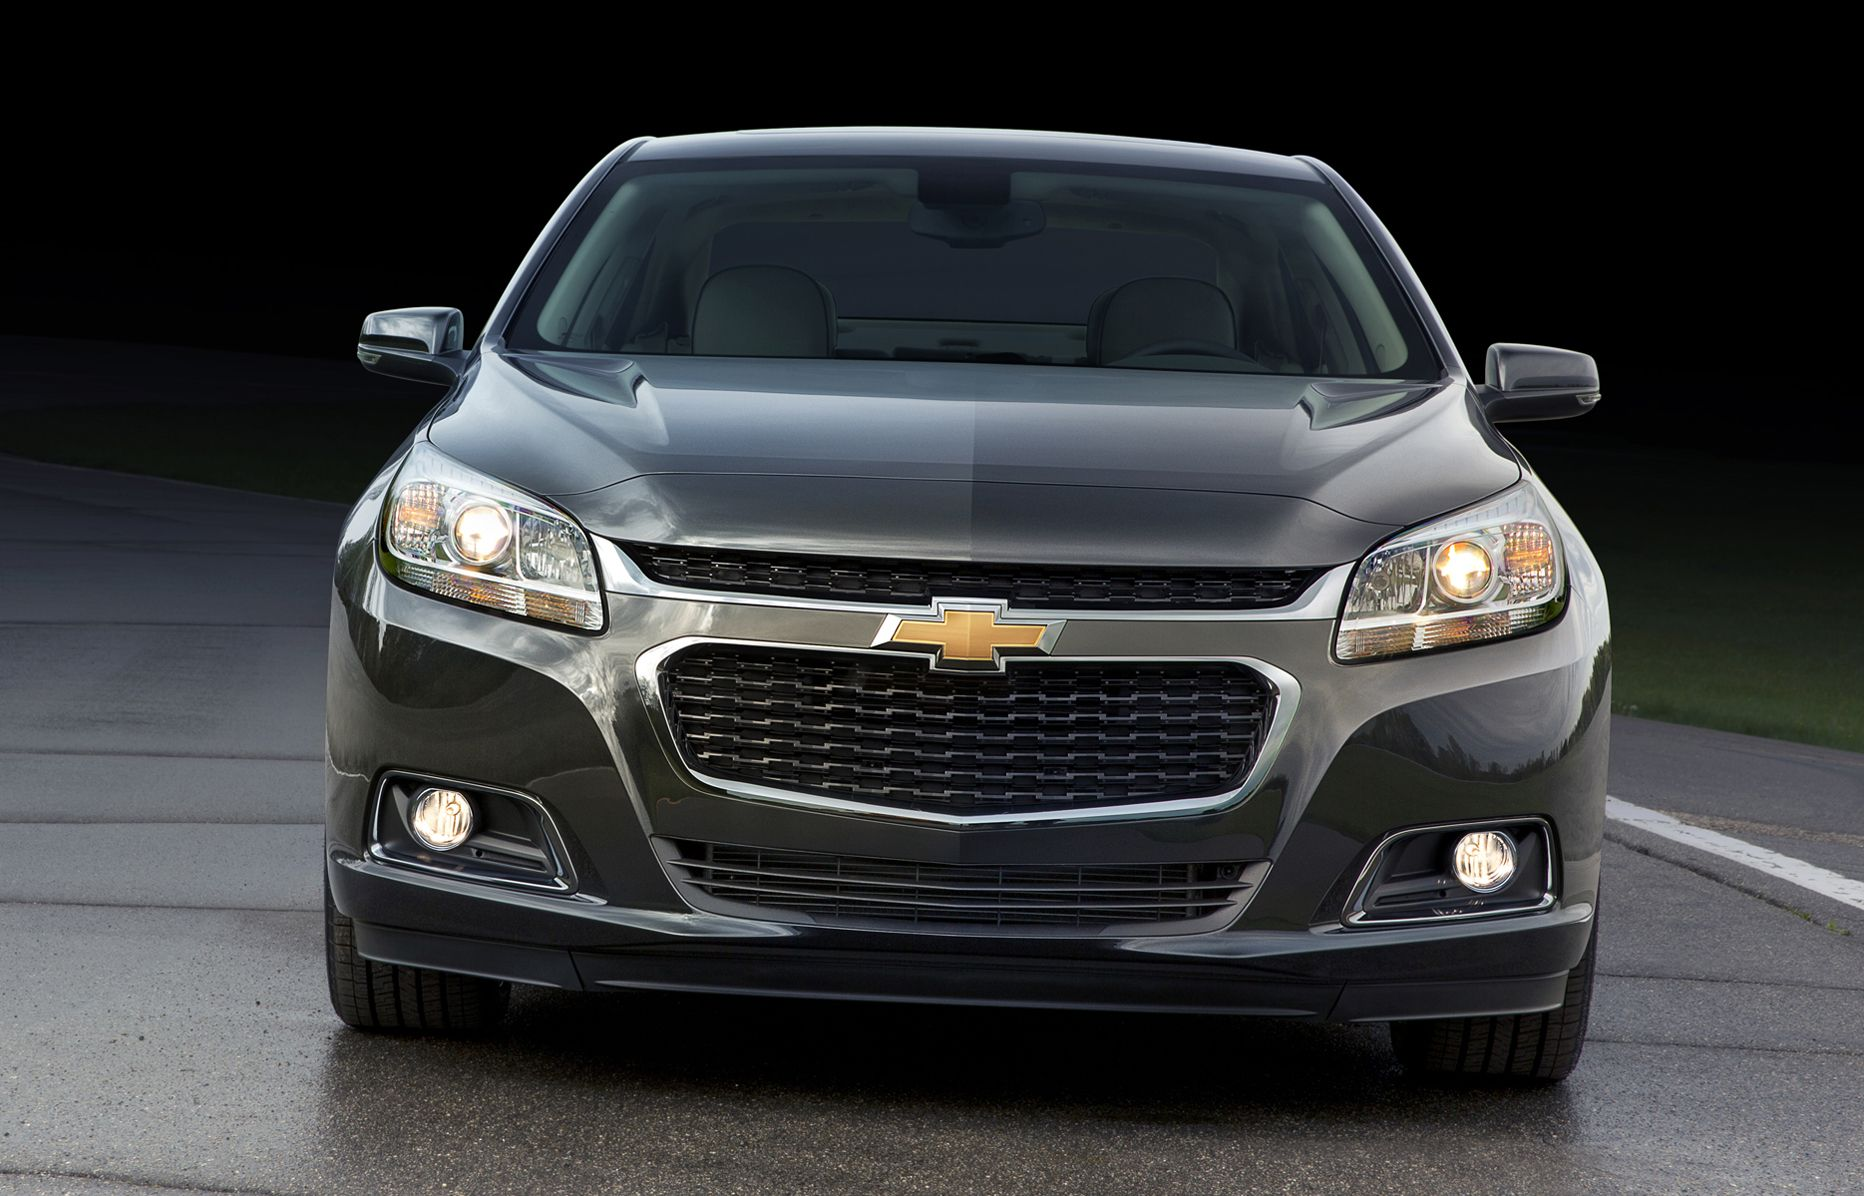 vehiclesearchresults silverado sale chevrolet cruze in for anchorage vehicle vehicles msrp photo ak